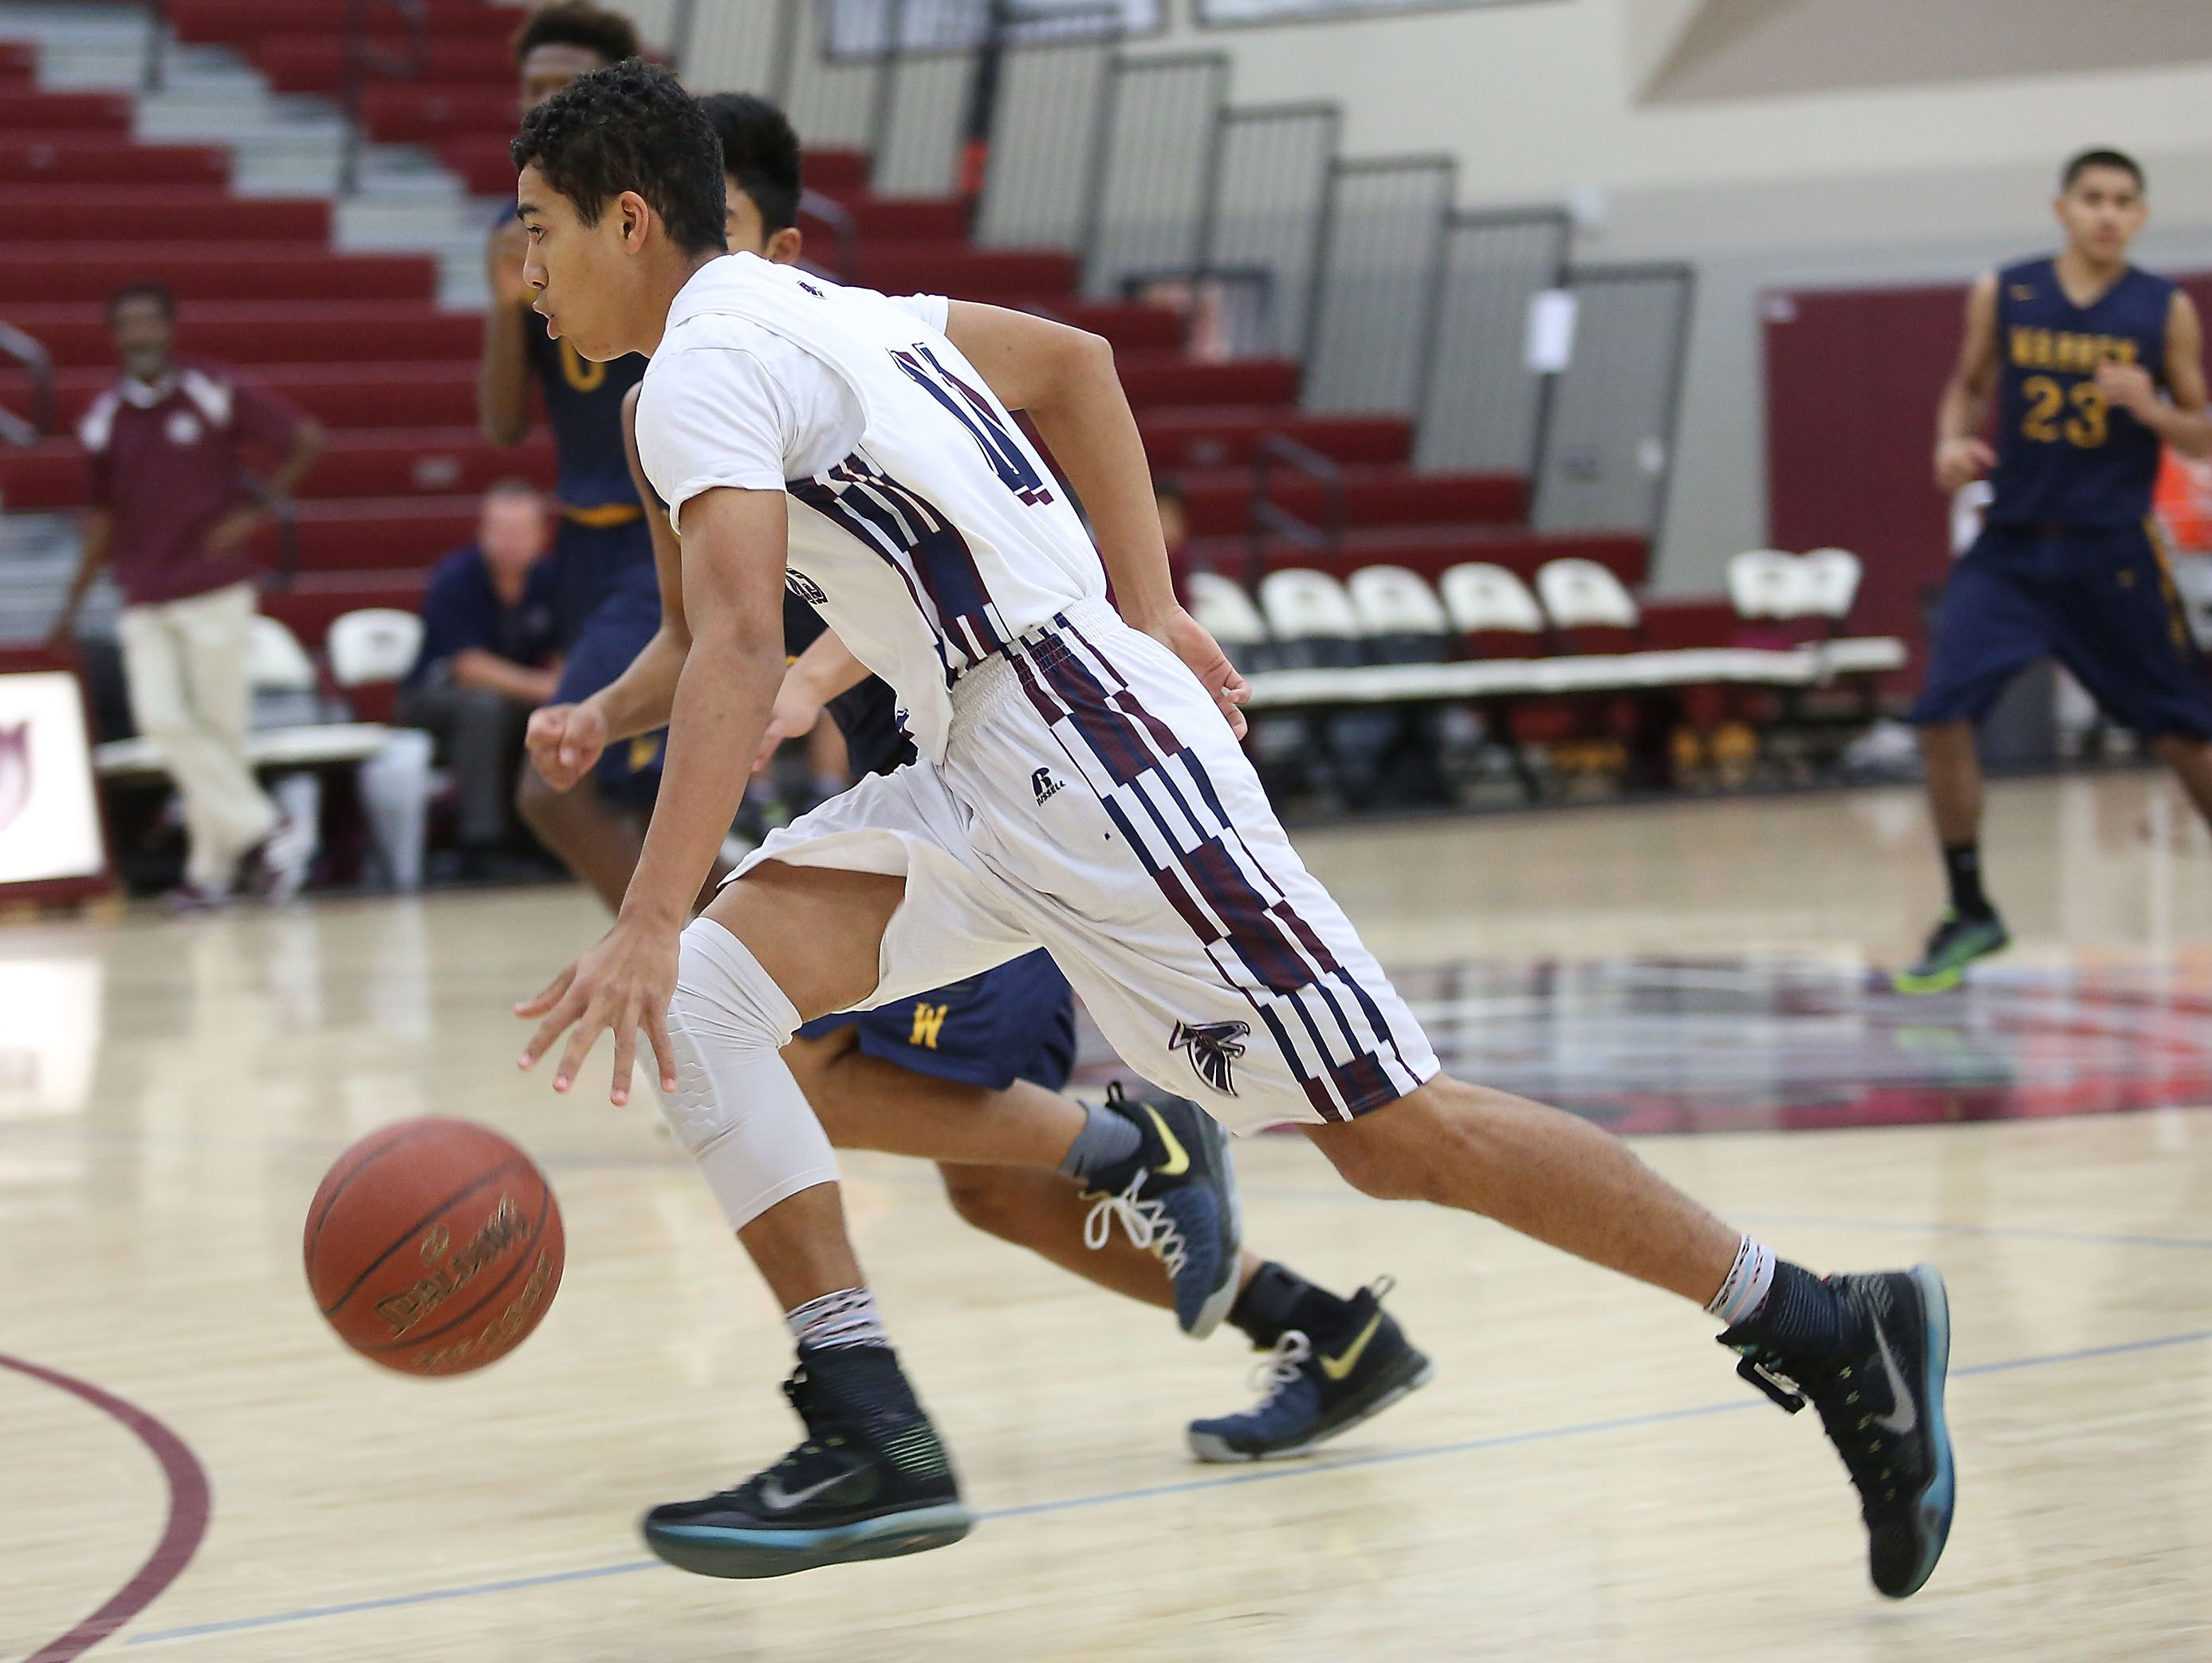 Pierce Sterling of La Quinta brings the ball up court during their win against Warren at the MaxPreps Holiday Classic in Rancho MIrage, December 29, 2016.